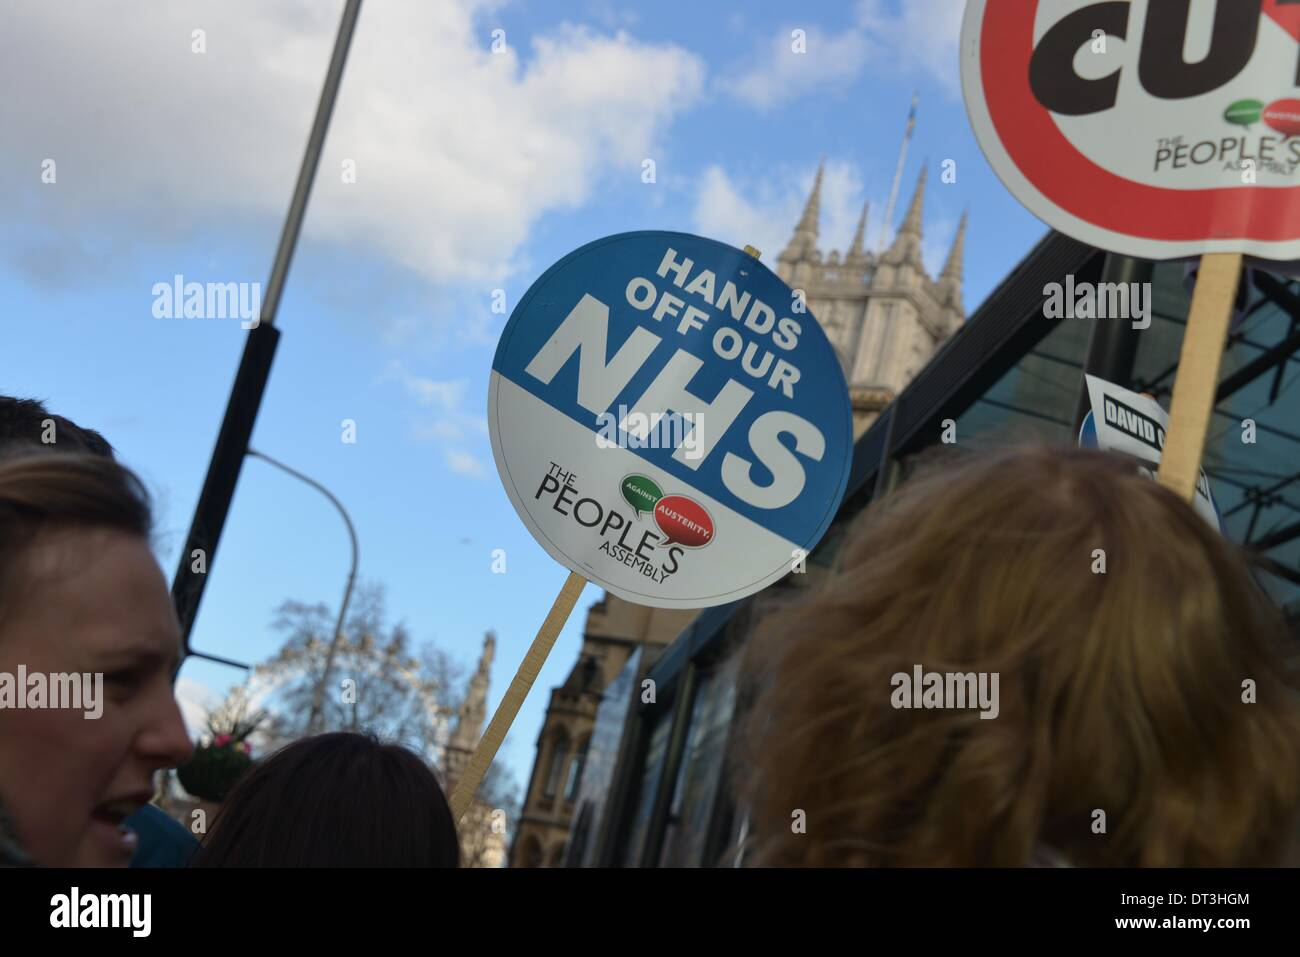 London England, 7th January 2014 : A group of students protest against Con-Dem government has confirmed that it Stock Photo